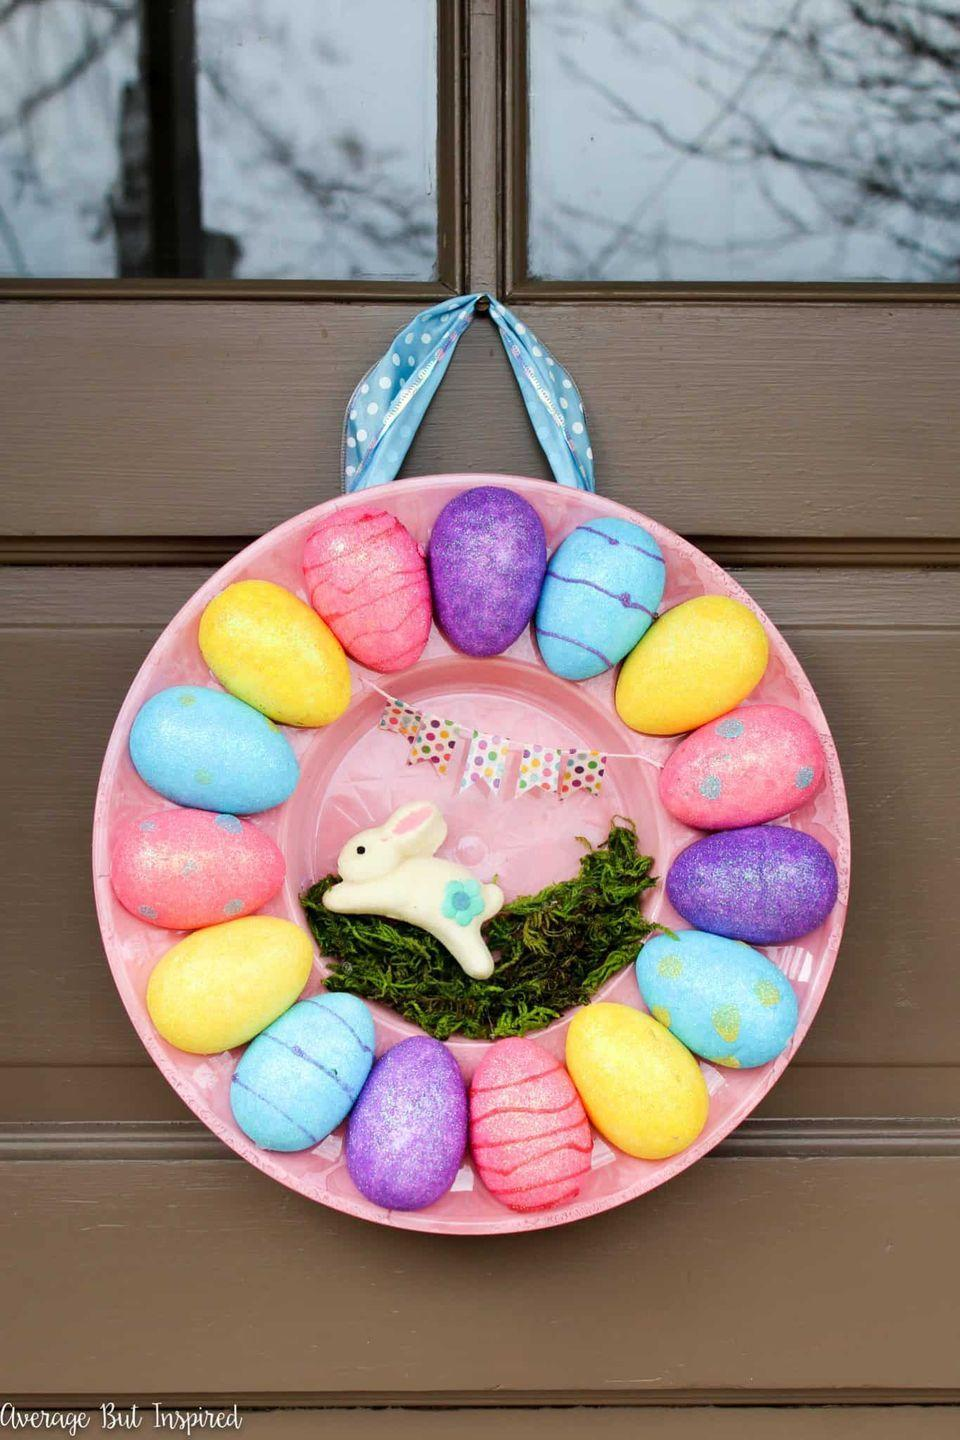 """<p>You'll undoubtedly be using a lot of egg trays for <a href=""""https://www.thepioneerwoman.com/food-cooking/recipes/a35566272/herbed-deviled-eggs-recipe/"""" rel=""""nofollow noopener"""" target=""""_blank"""" data-ylk=""""slk:deviled eggs"""" class=""""link rapid-noclick-resp"""">deviled eggs</a> this Easter, but who knew that they could also be used to craft a unique Easter wreath? With fun festive touches, everyone will ask how you made it.</p><p><strong>Get the tutorial at <a href=""""https://averageinspired.com/2017/03/how-to-make-an-egg-tray-wreath-for-easter-with-dollar-store-supplies.html"""" rel=""""nofollow noopener"""" target=""""_blank"""" data-ylk=""""slk:Average But Inspired"""" class=""""link rapid-noclick-resp"""">Average But Inspired</a>.</strong></p><p><a class=""""link rapid-noclick-resp"""" href=""""https://go.redirectingat.com?id=74968X1596630&url=https%3A%2F%2Fwww.walmart.com%2Fip%2FDeviled-Egg-Clear-Plastic-Crystal-Cut-Platter-Set-of-3-9-in-diameter-Flower-Shaped-12-Egg-Tray%2F297267836&sref=https%3A%2F%2Fwww.thepioneerwoman.com%2Fhome-lifestyle%2Fcrafts-diy%2Fg35698457%2Fdiy-easter-wreath-ideas%2F"""" rel=""""nofollow noopener"""" target=""""_blank"""" data-ylk=""""slk:SHOP EGG TRAYS"""">SHOP EGG TRAYS</a></p>"""